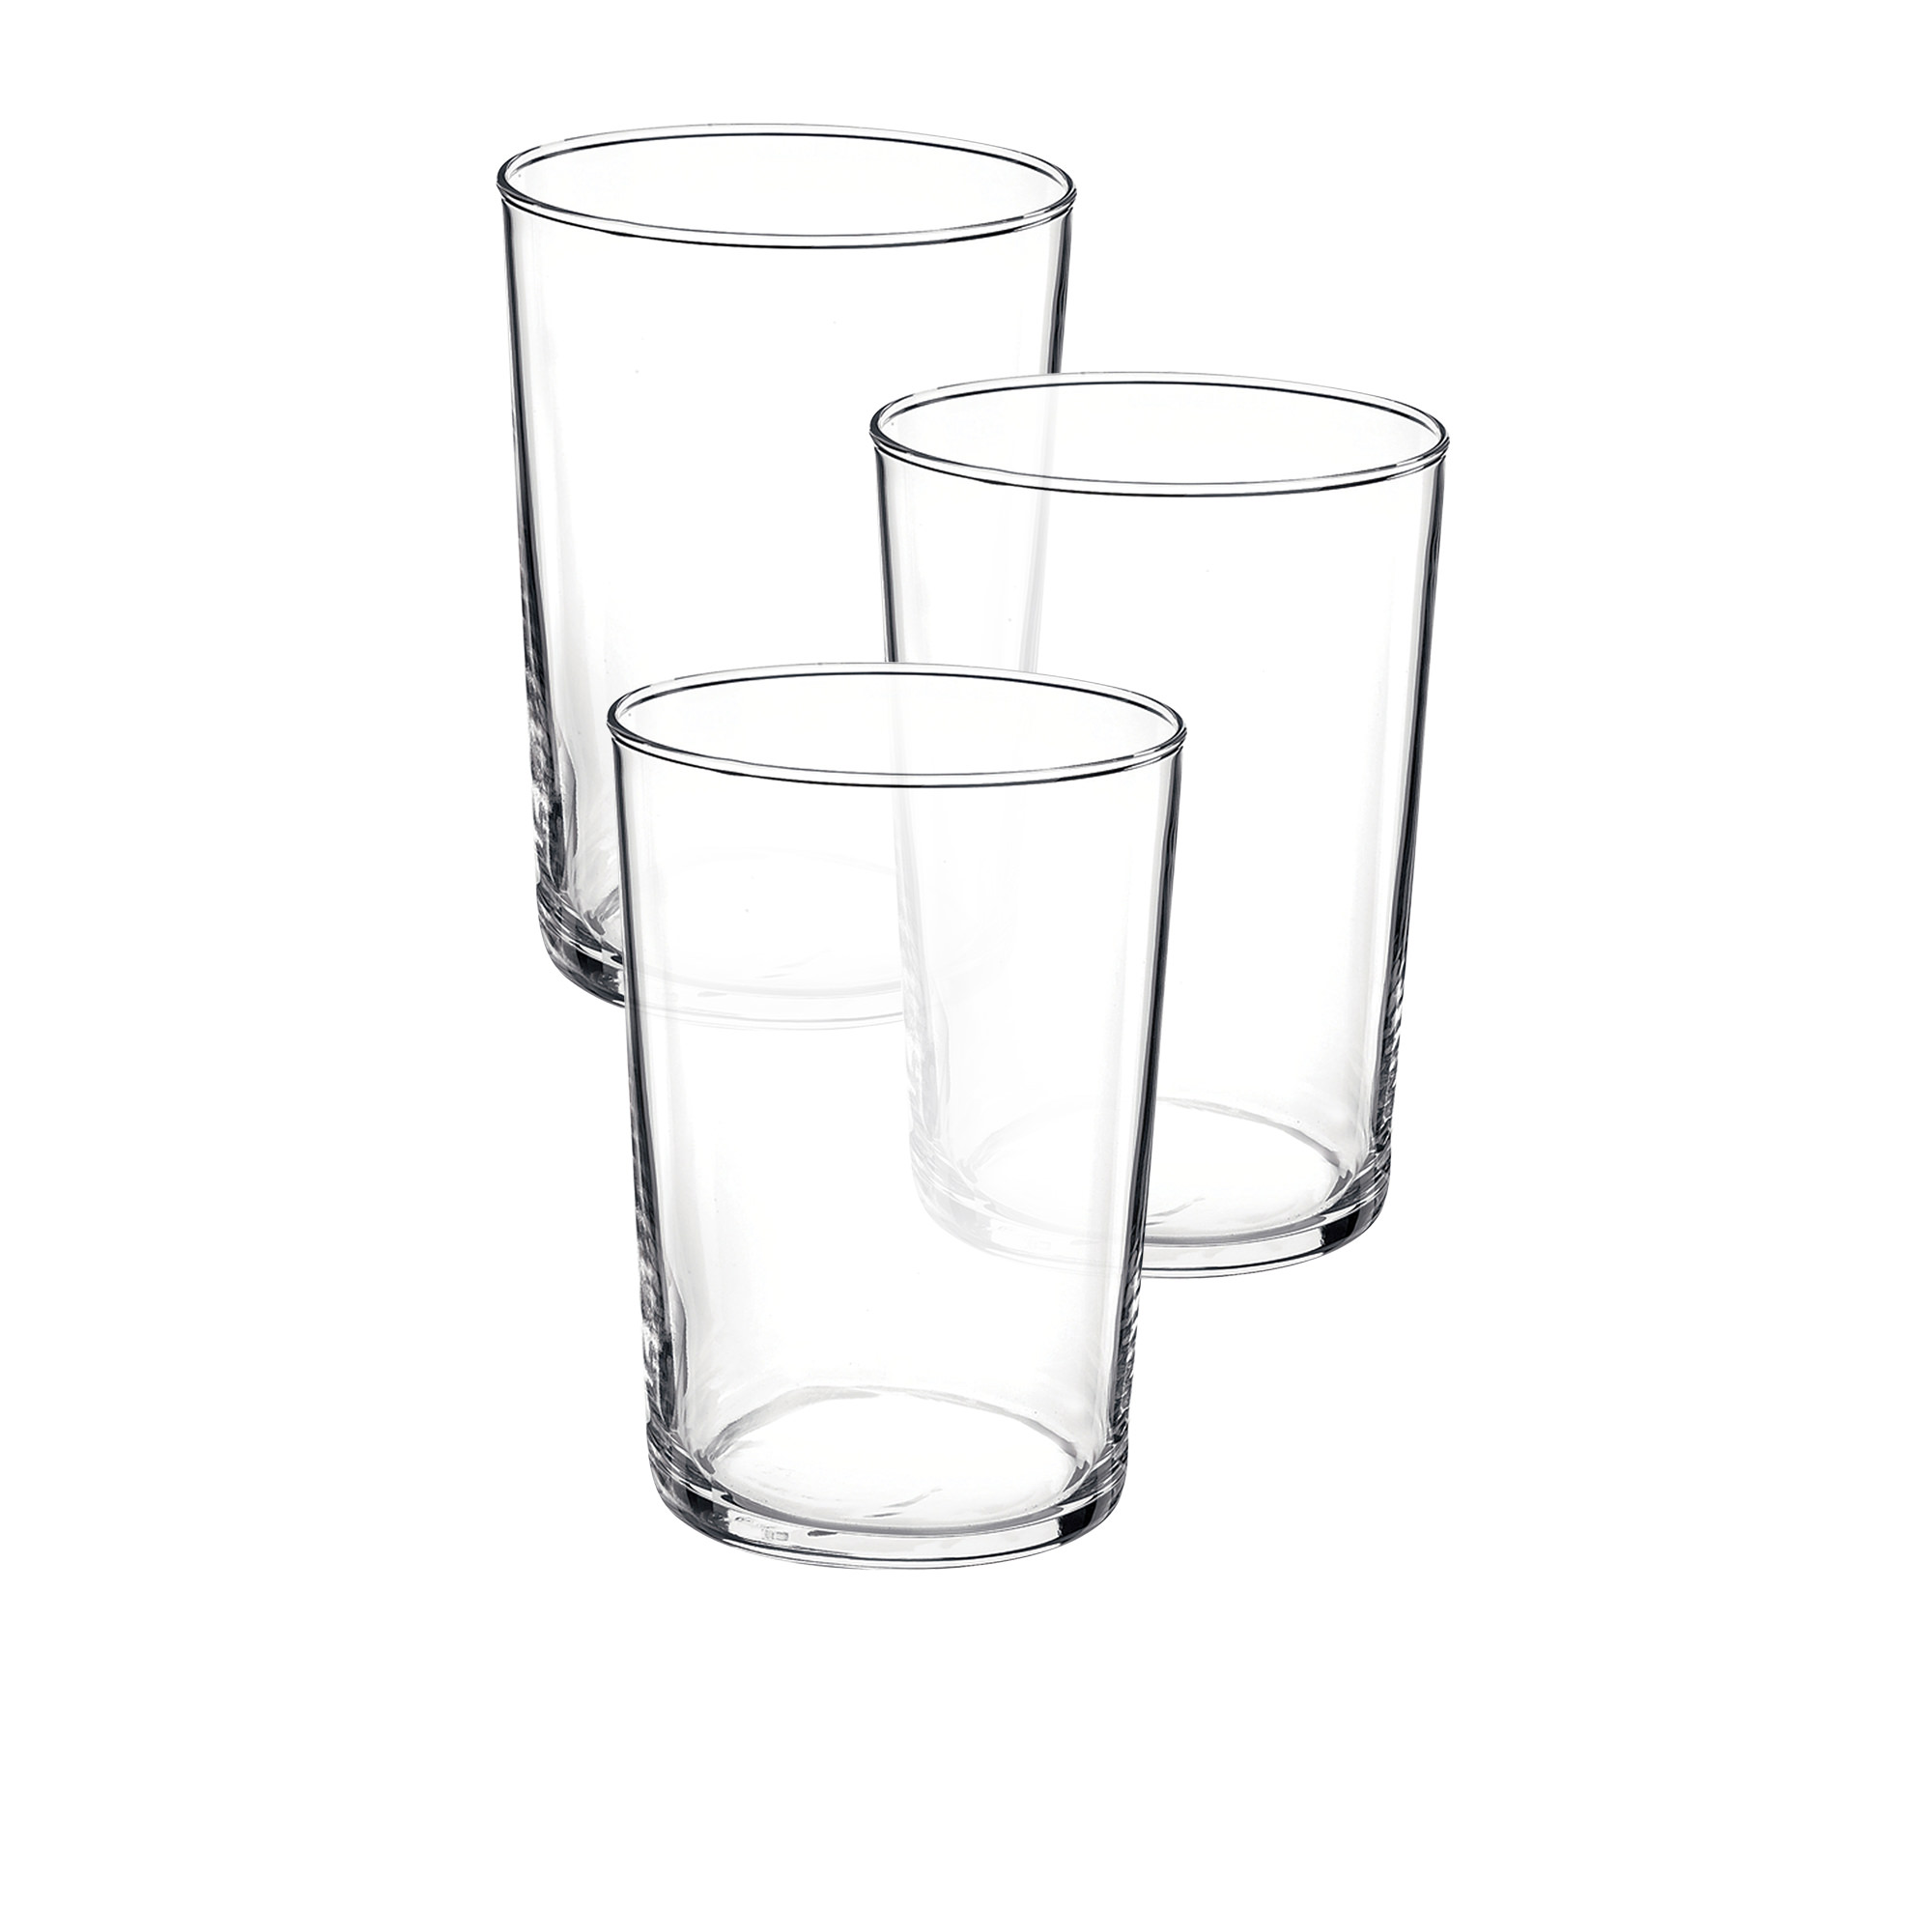 Bormioli Rocco Bodega 3pc Maxi Glass Tumbler Set 500ml